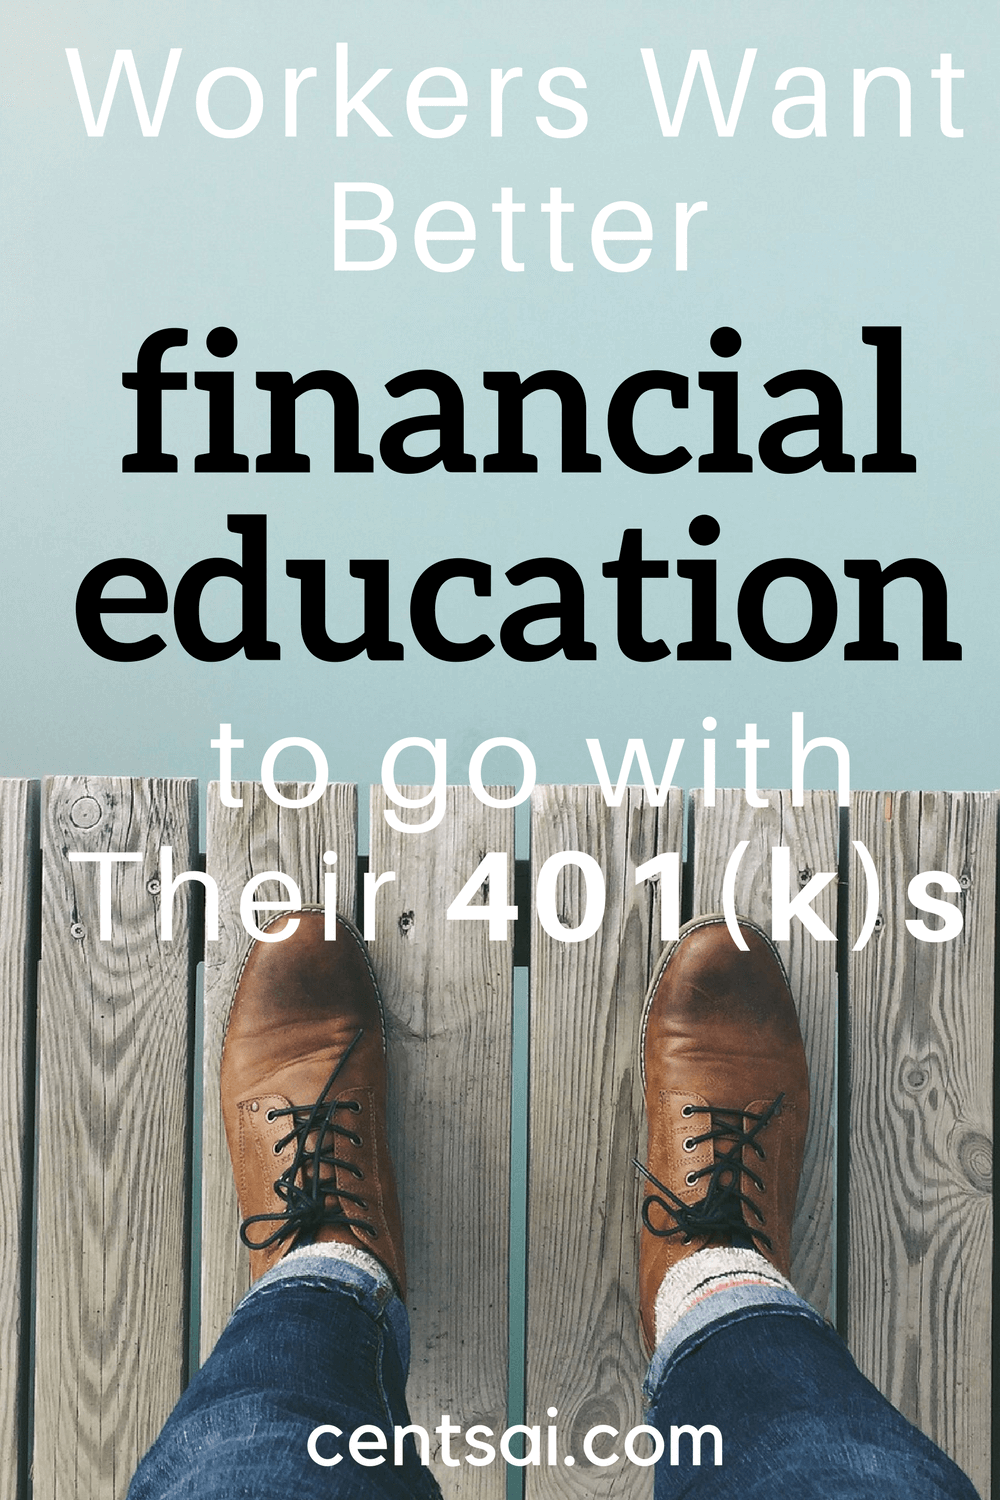 Workers Want Better Financial Education to go with Their 401(k)s